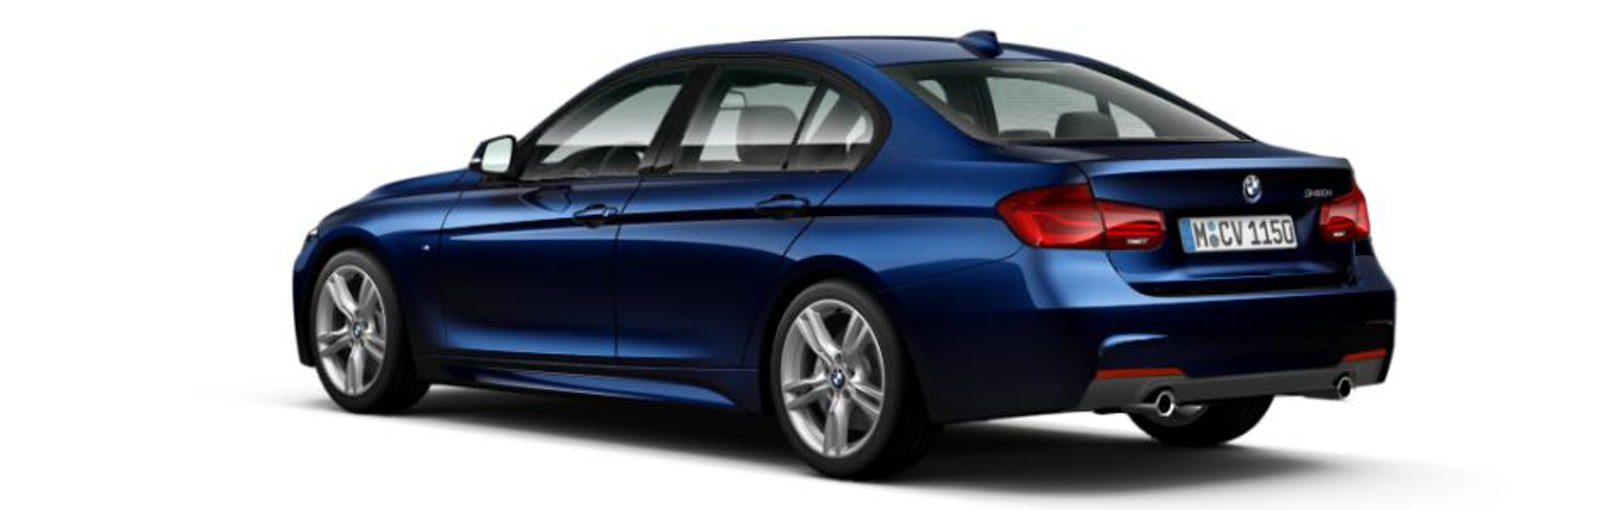 BMW Series Colours Guide And Prices Carwow - Blue bmw